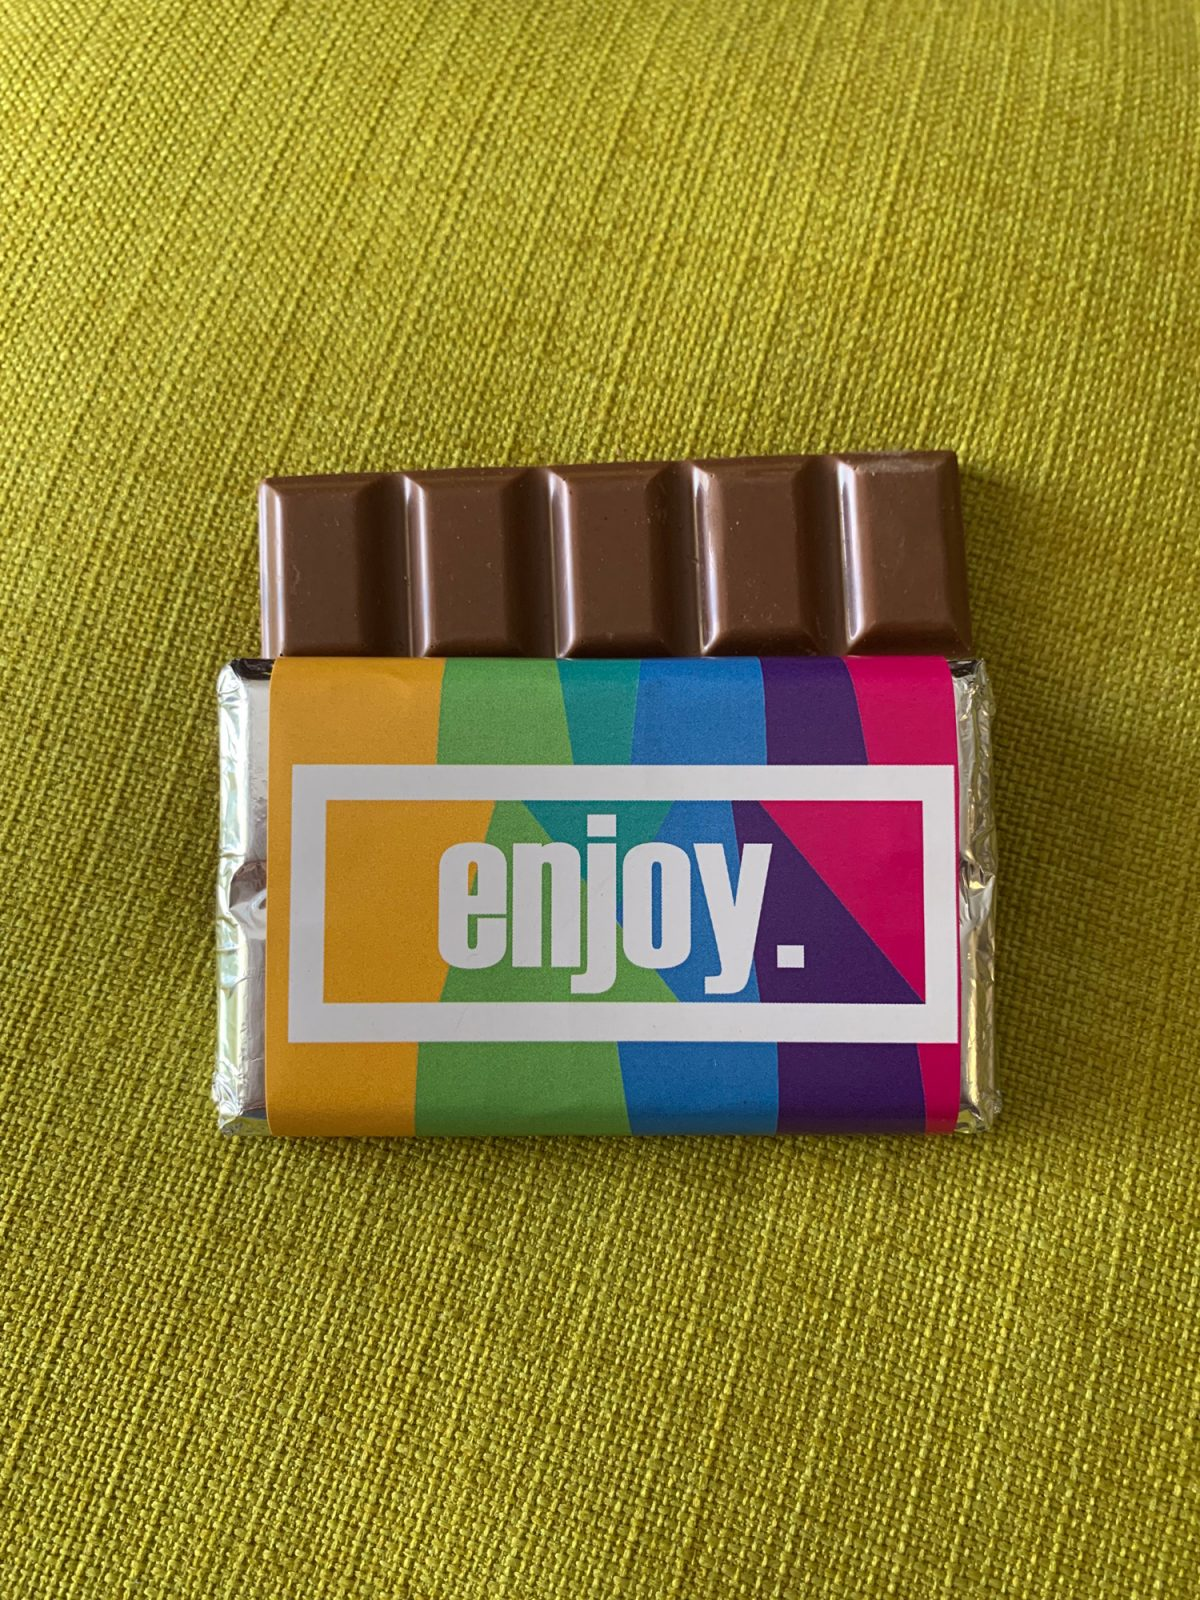 enjoy | medium | chocolate bar | sweetalk